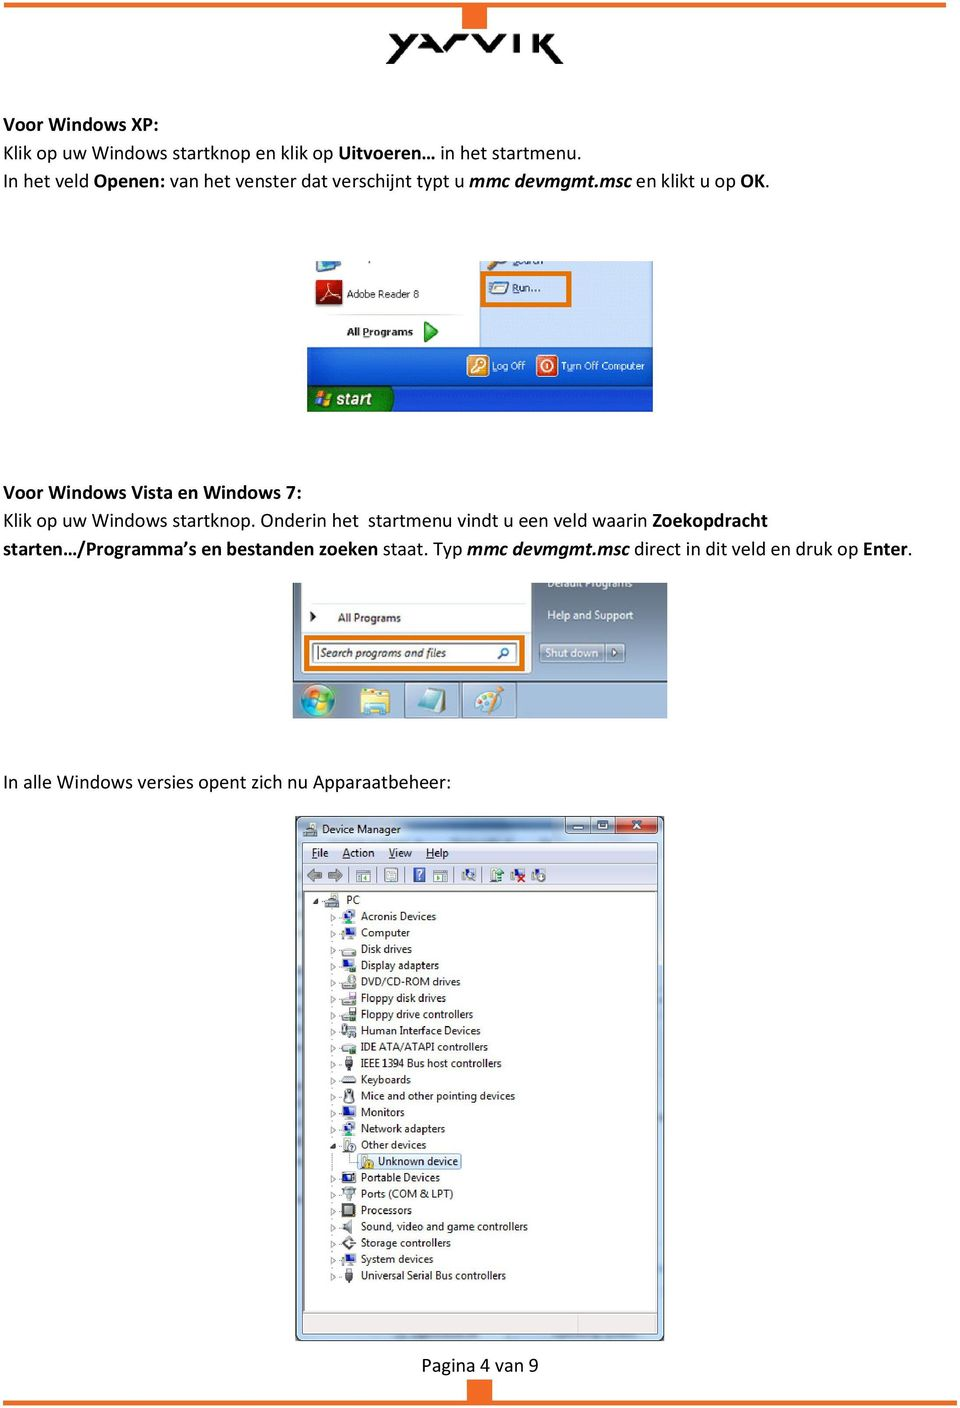 Voor Windows Vista en Windows 7: Klik op uw Windows startknop.